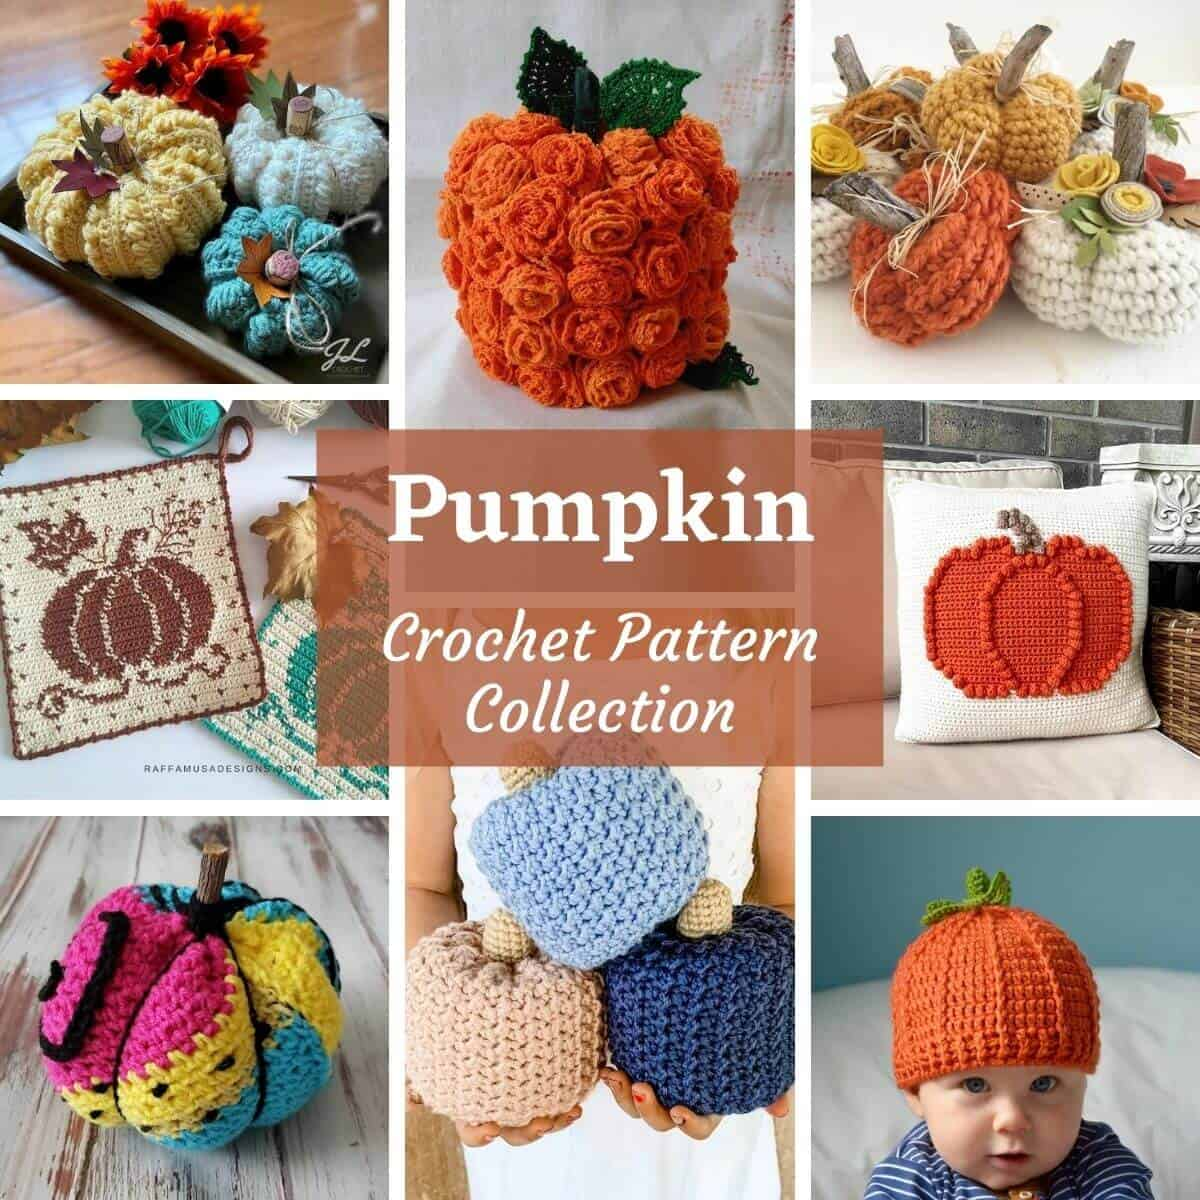 Photo collage of crocheted pumpkins, overlay text saying pumpkin crochet pattern collection.